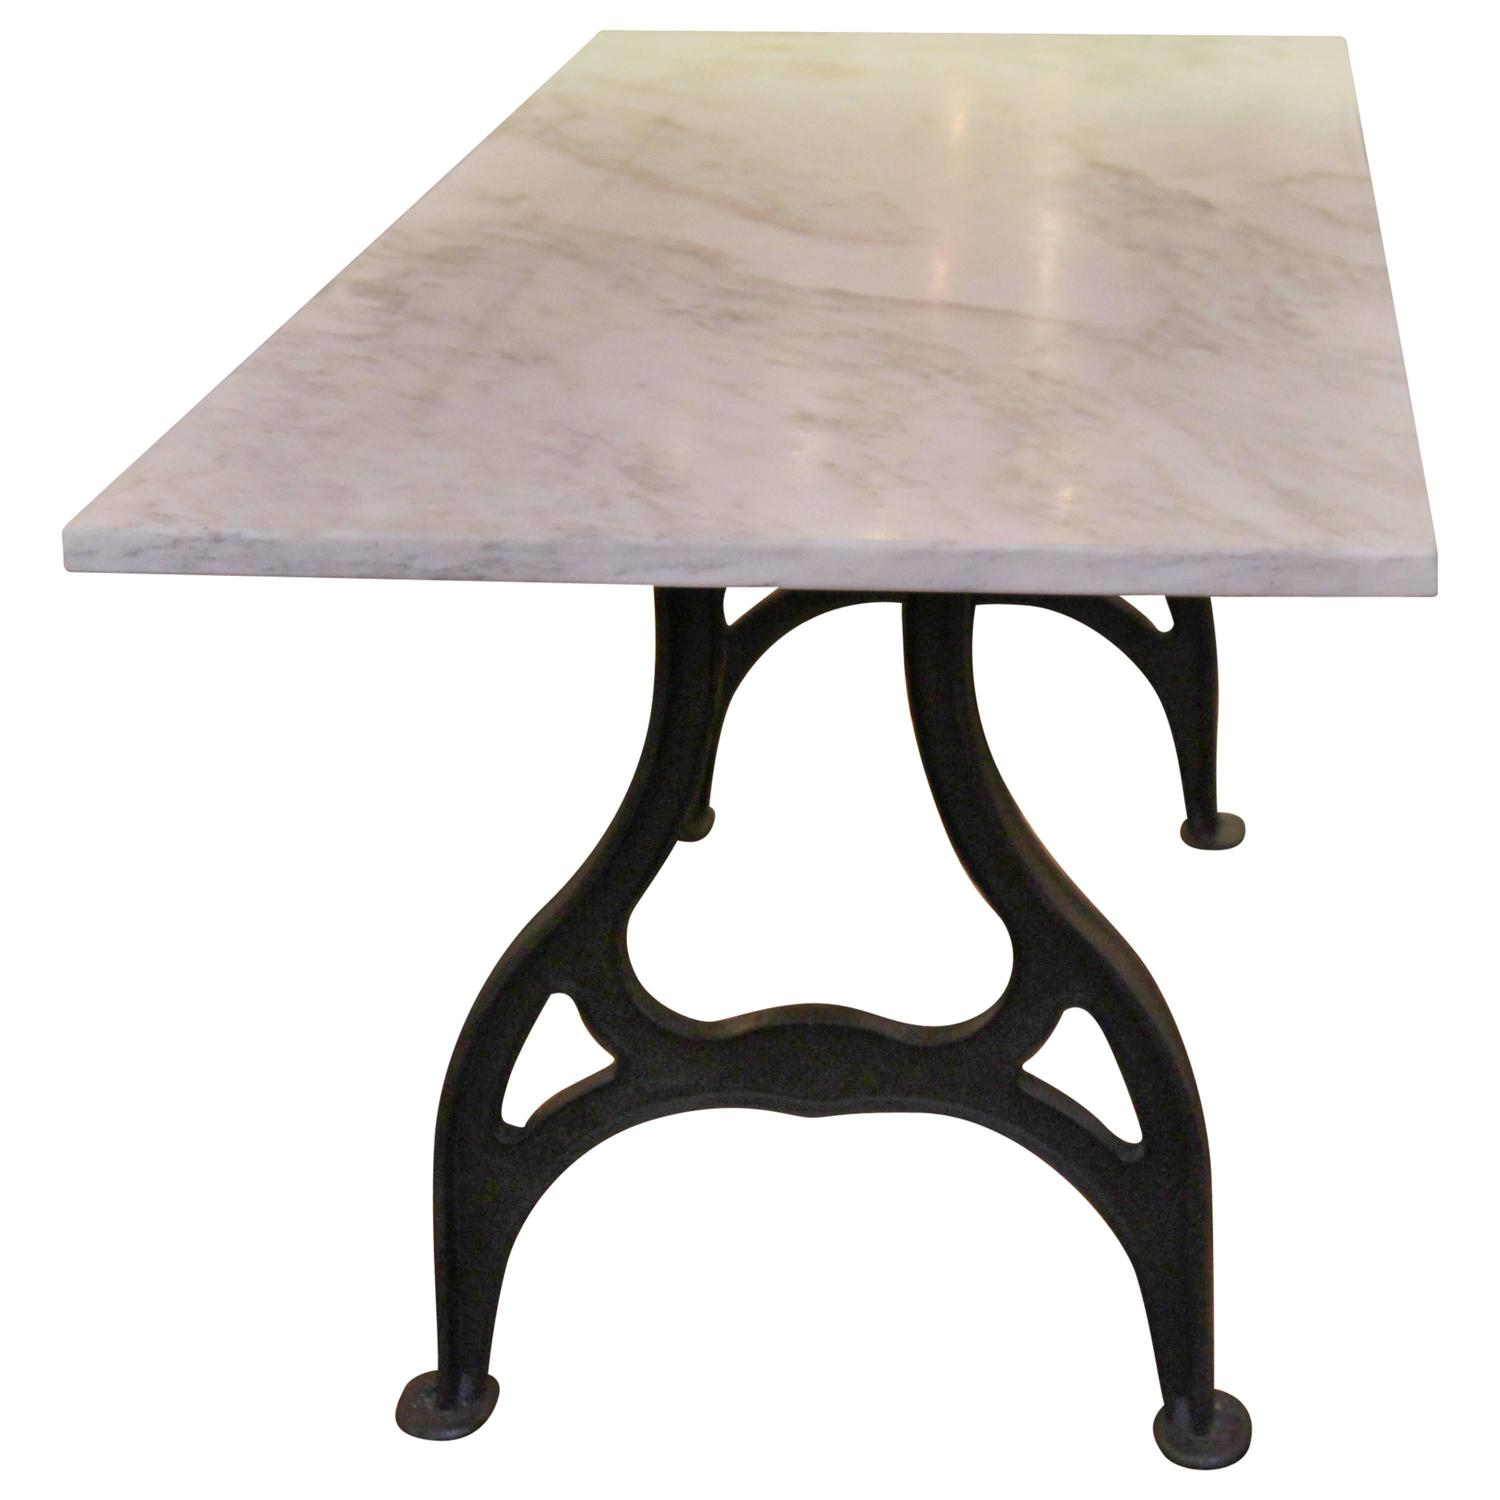 Reclaimed Marble Table with Cast Iron Industrial Legs at 1stdibs